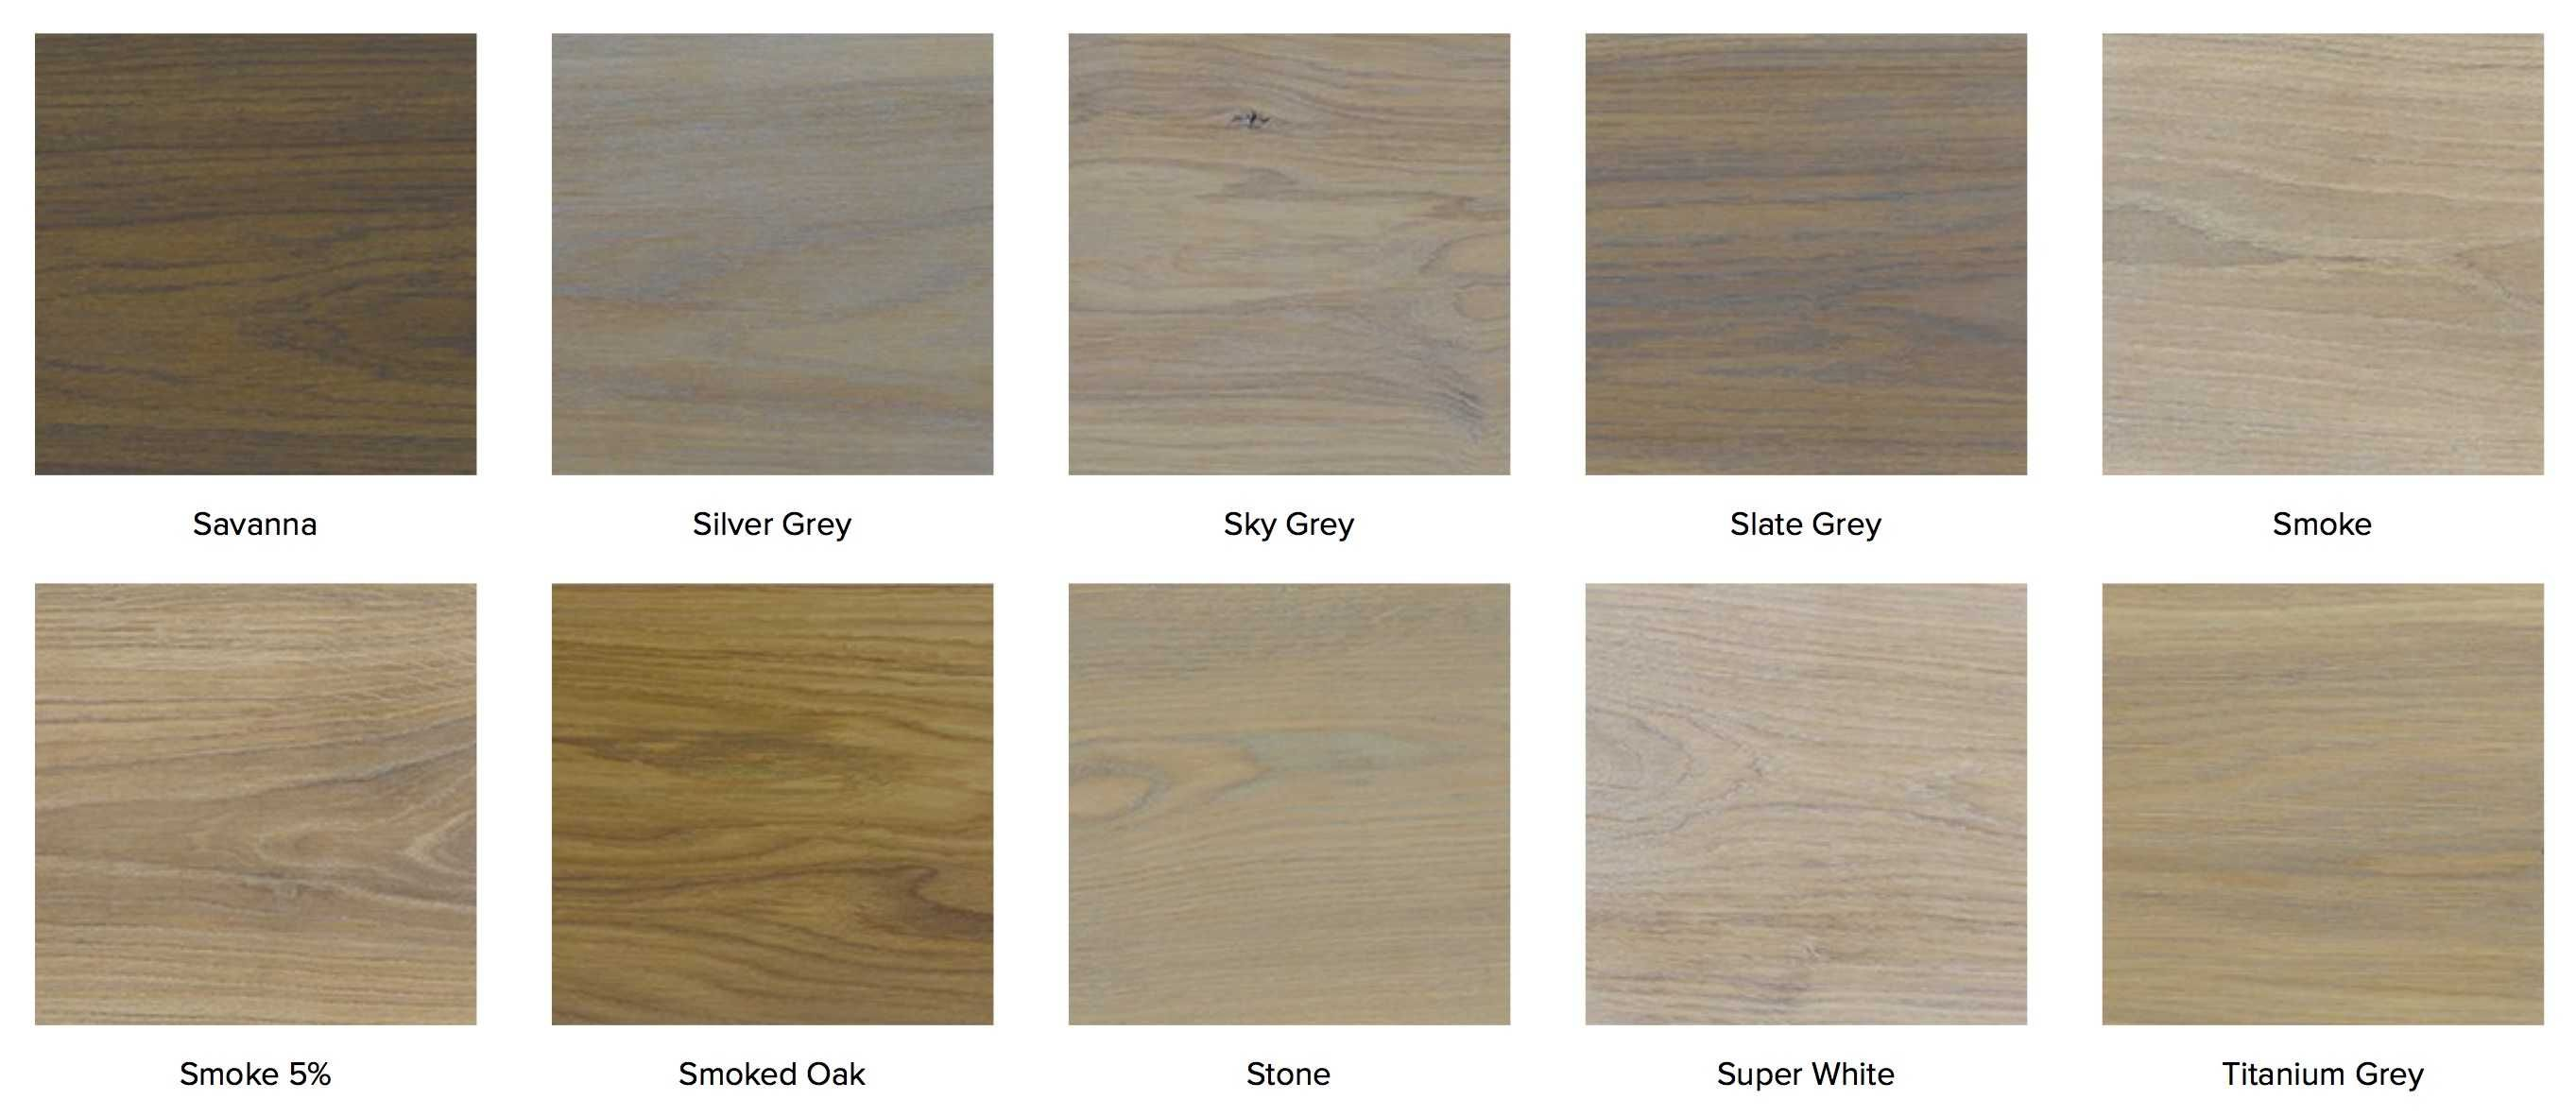 Rubio Monocoat Hardwax Oil Color Swatch Chart For Wood Floors